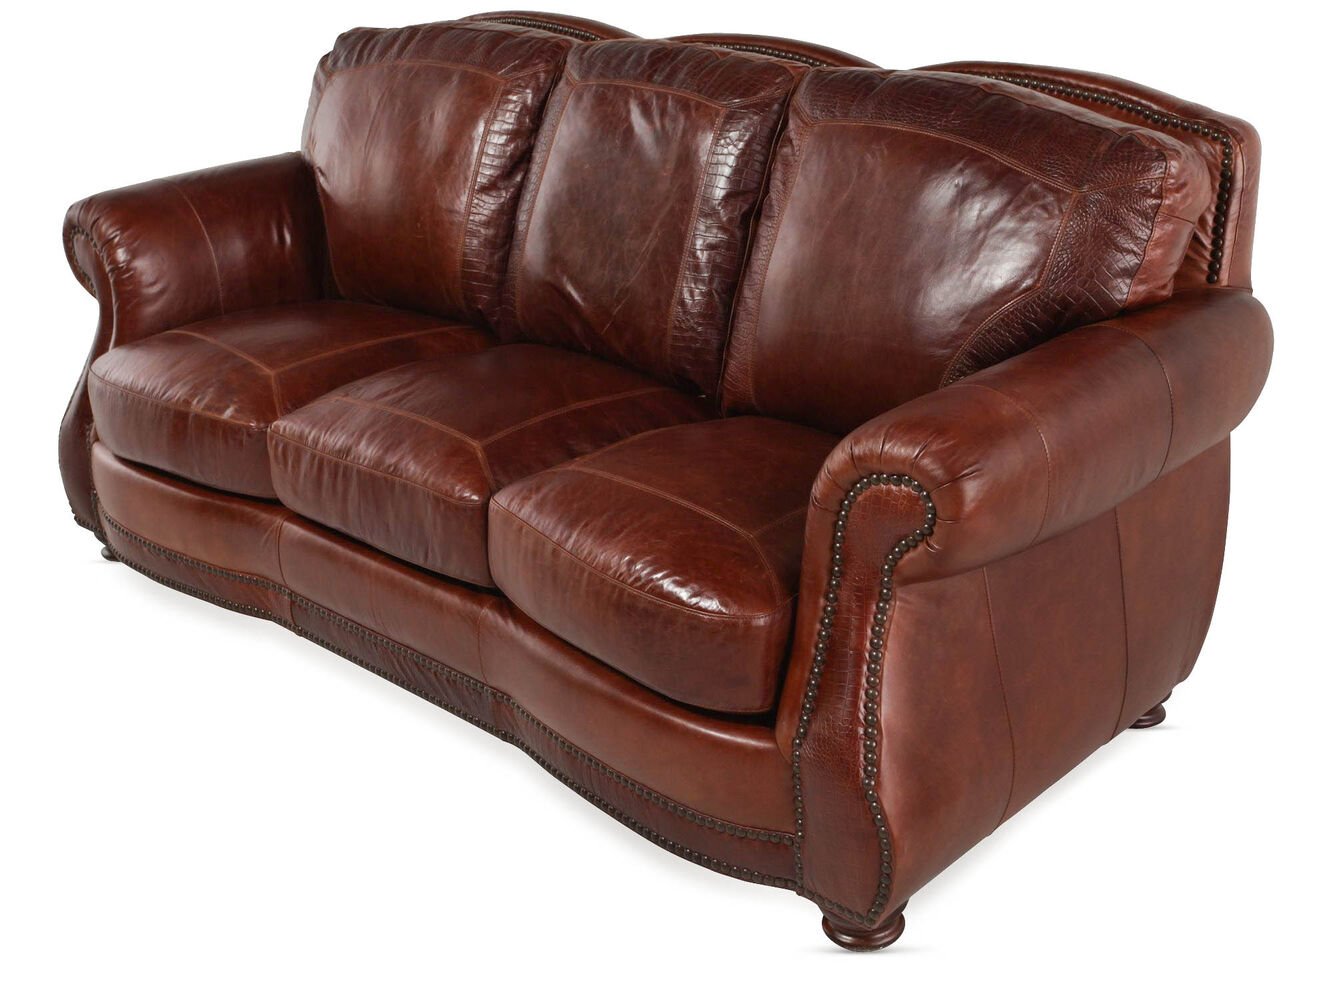 Usa leather brandy sofa mathis brothers furniture for Divan furniture usa